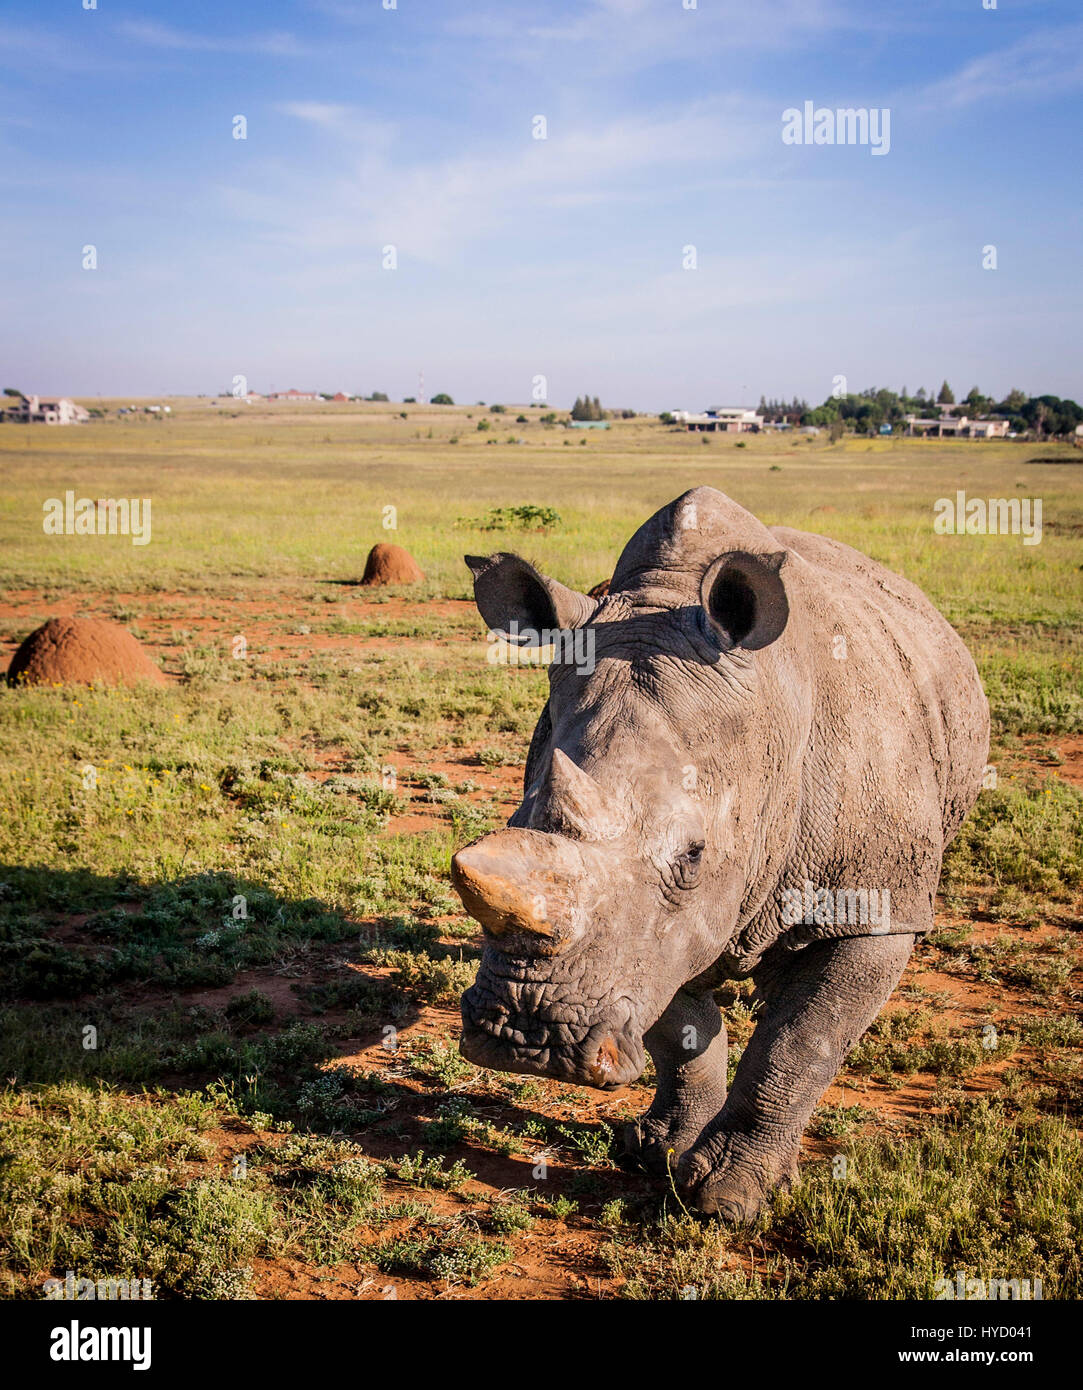 White rhino in South-Africa - Stock Image